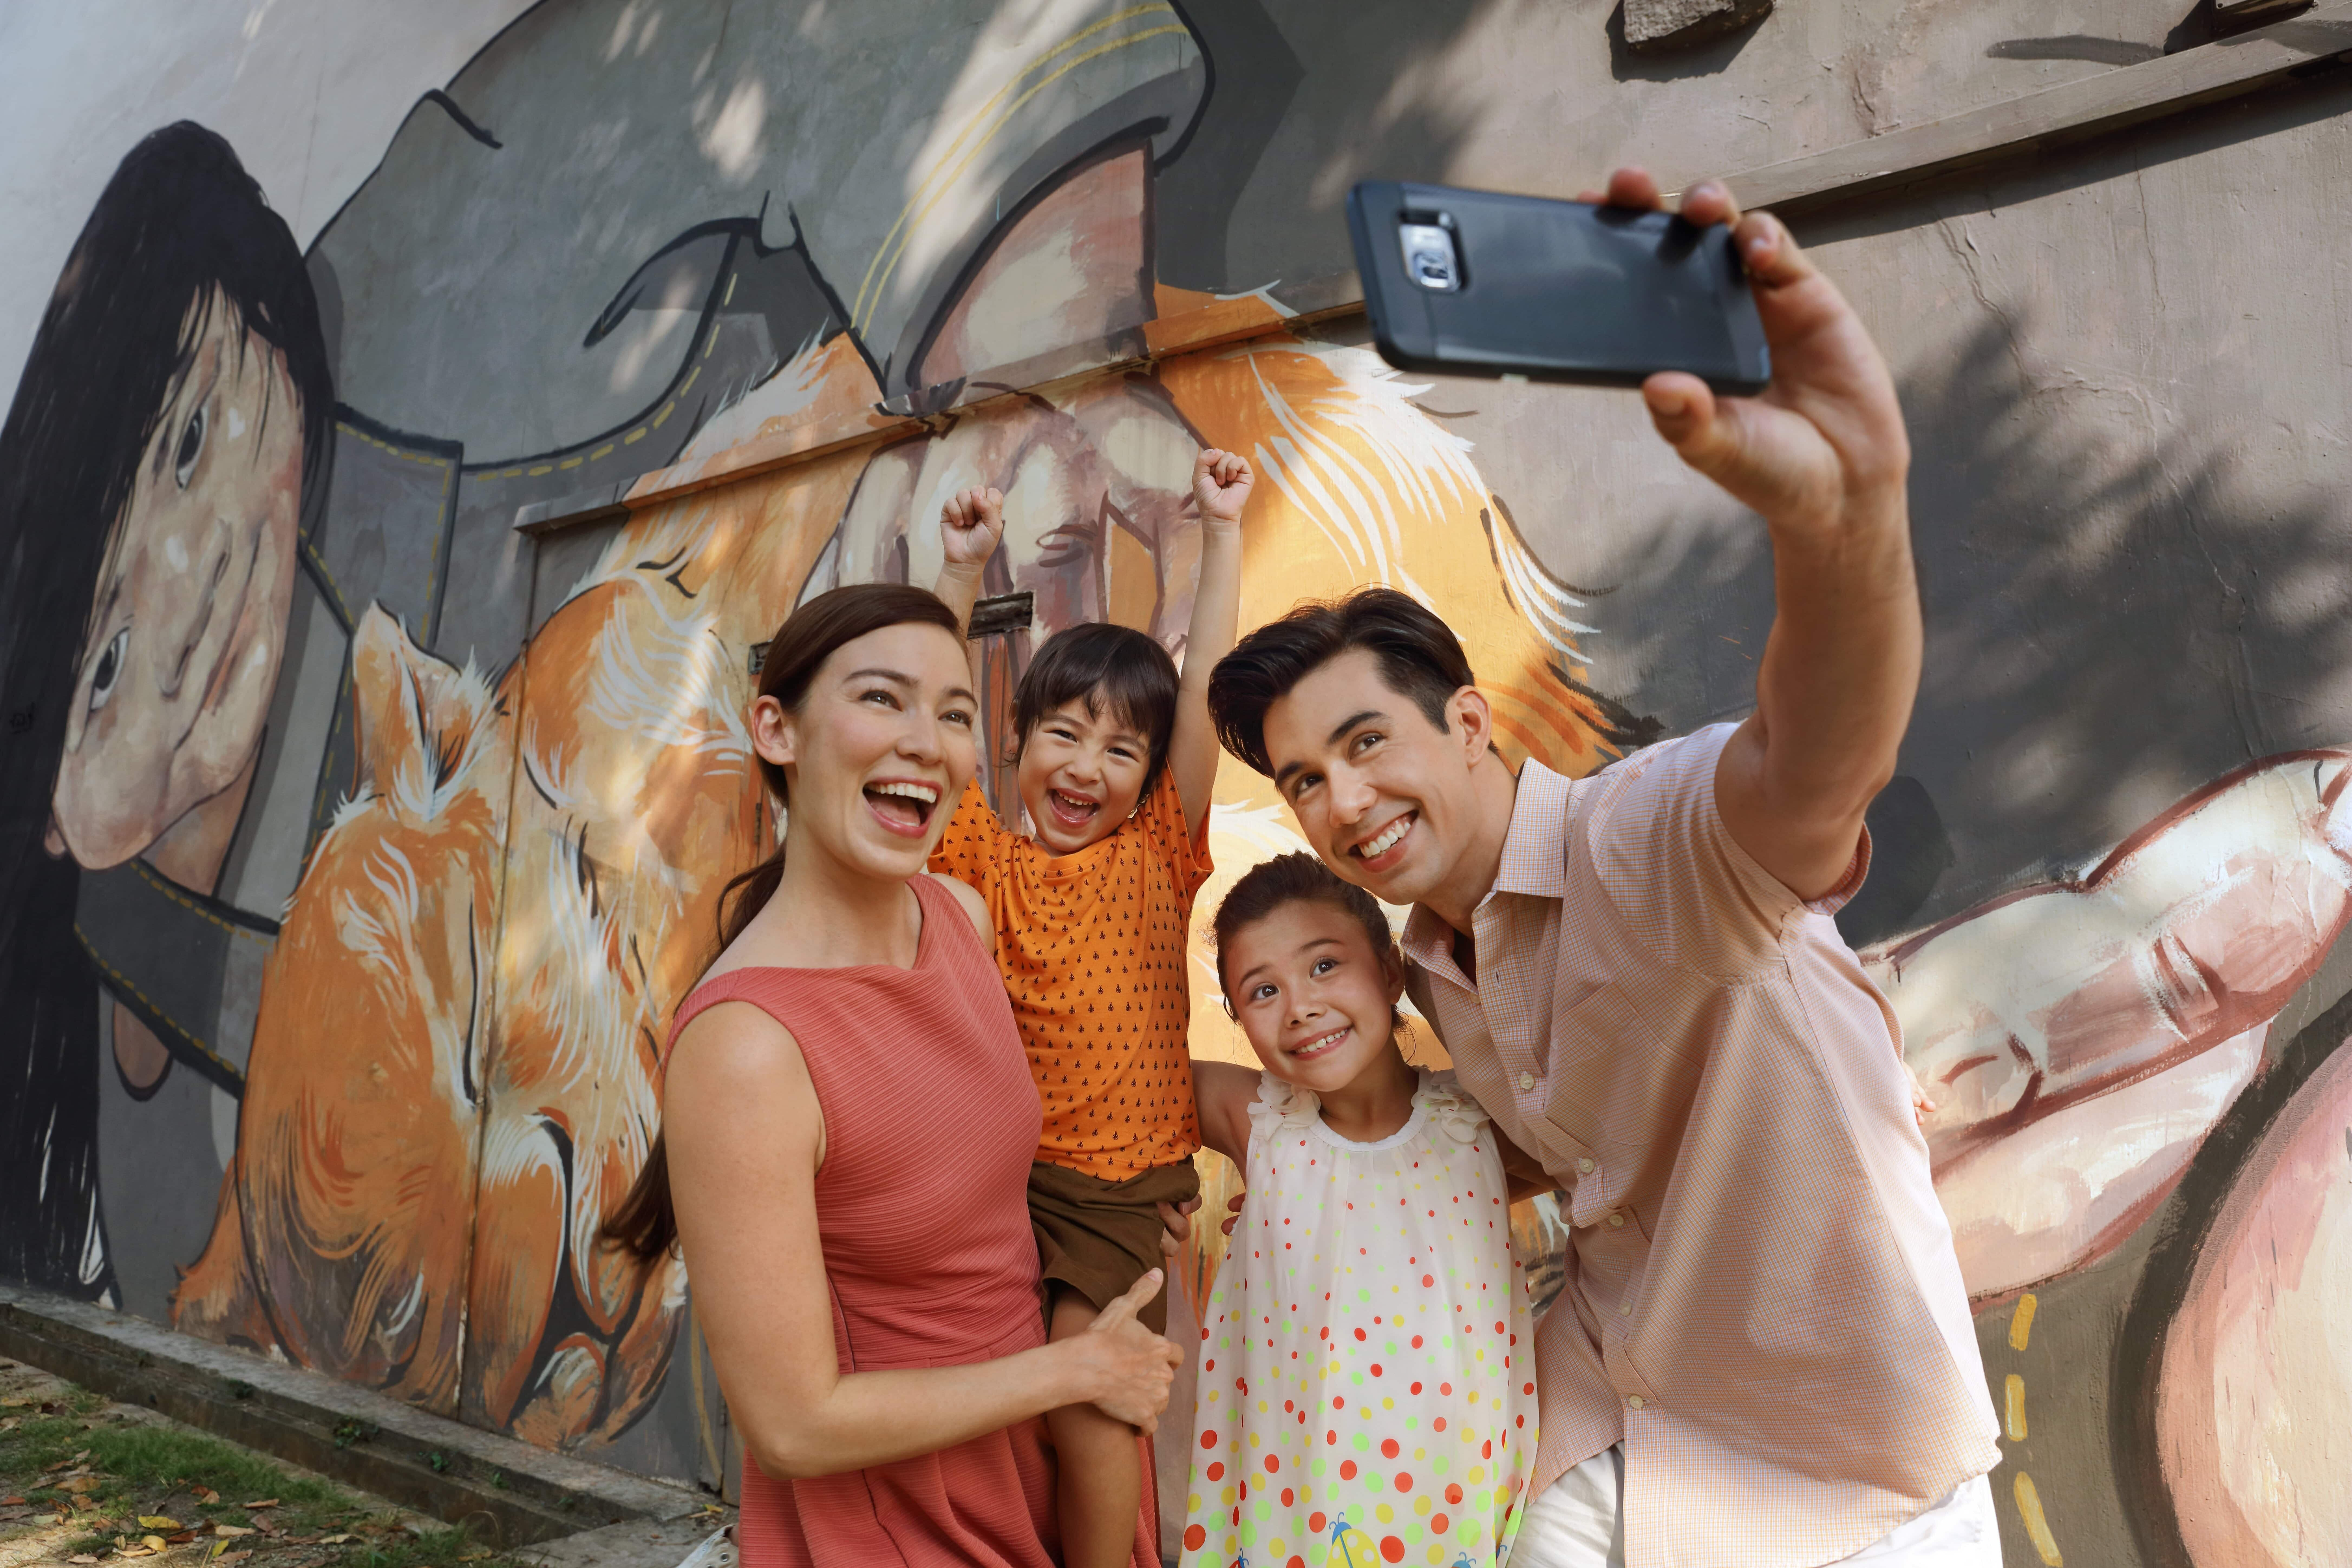 Family tour activity during school holiday